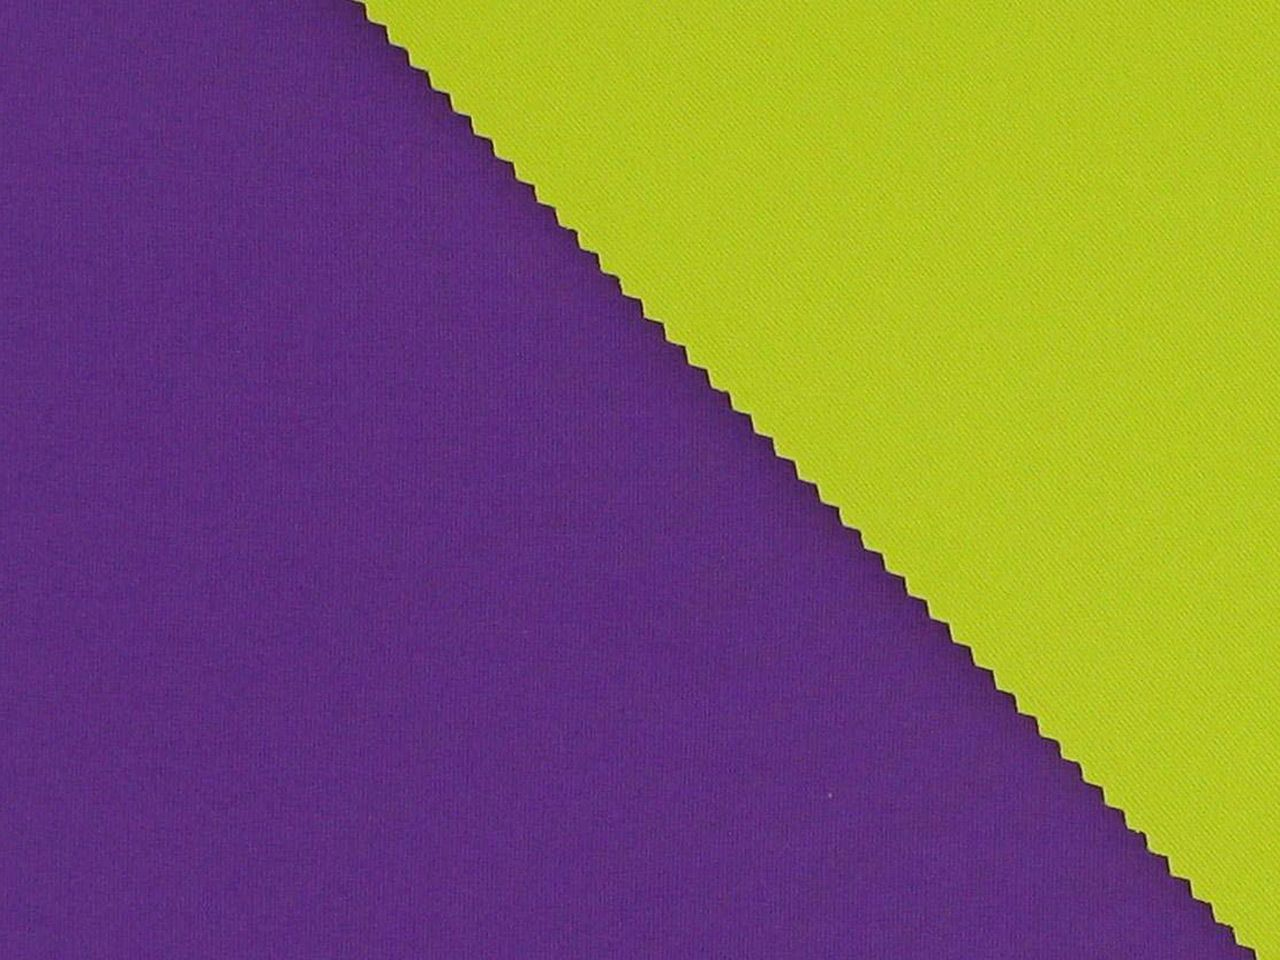 Double-Faced Bonded Neoprene, Purple and Yellow